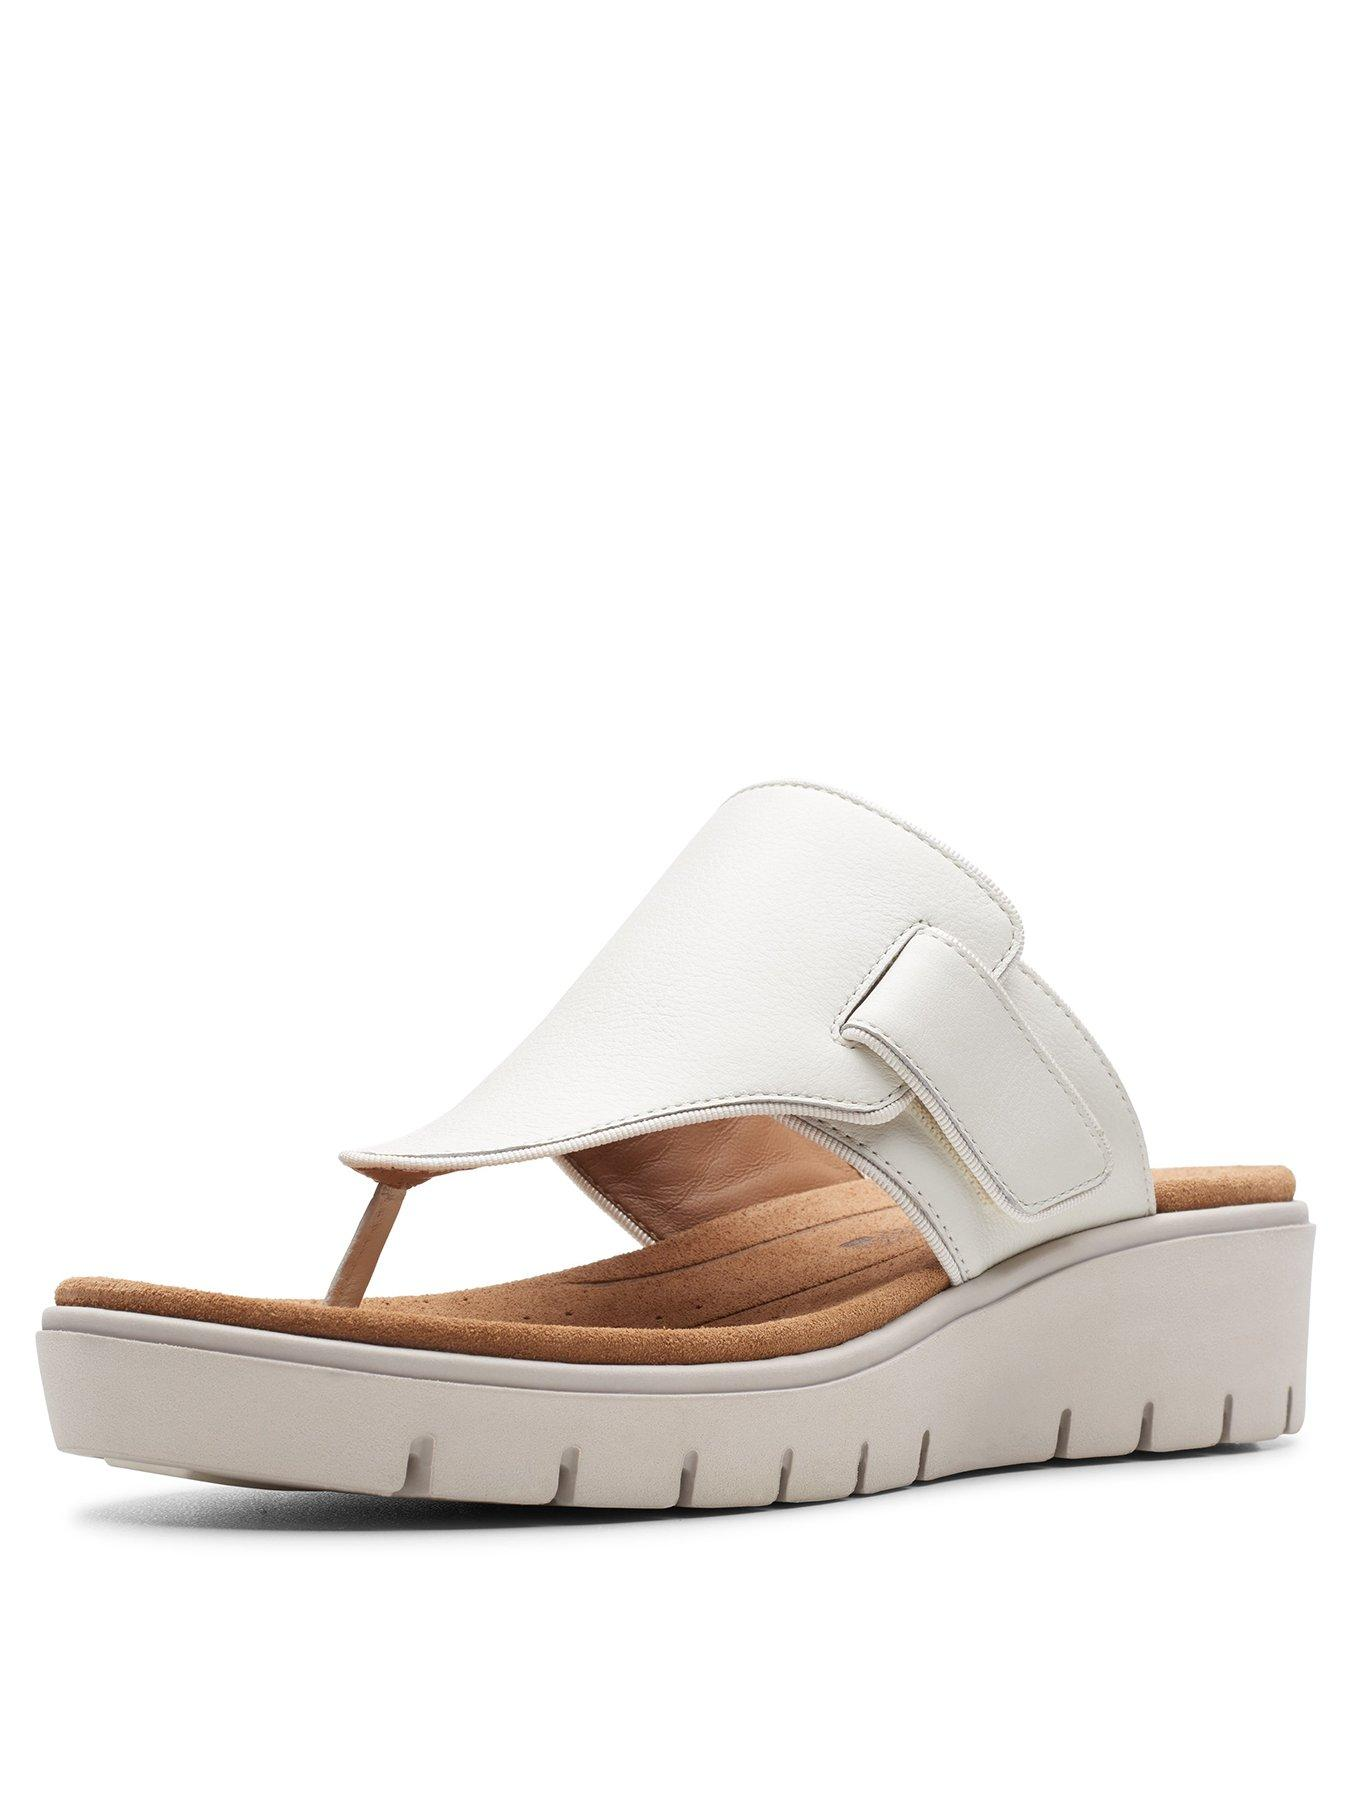 Clarks Clarks Unstructured Un Karely Sea Wide Fit Wedge